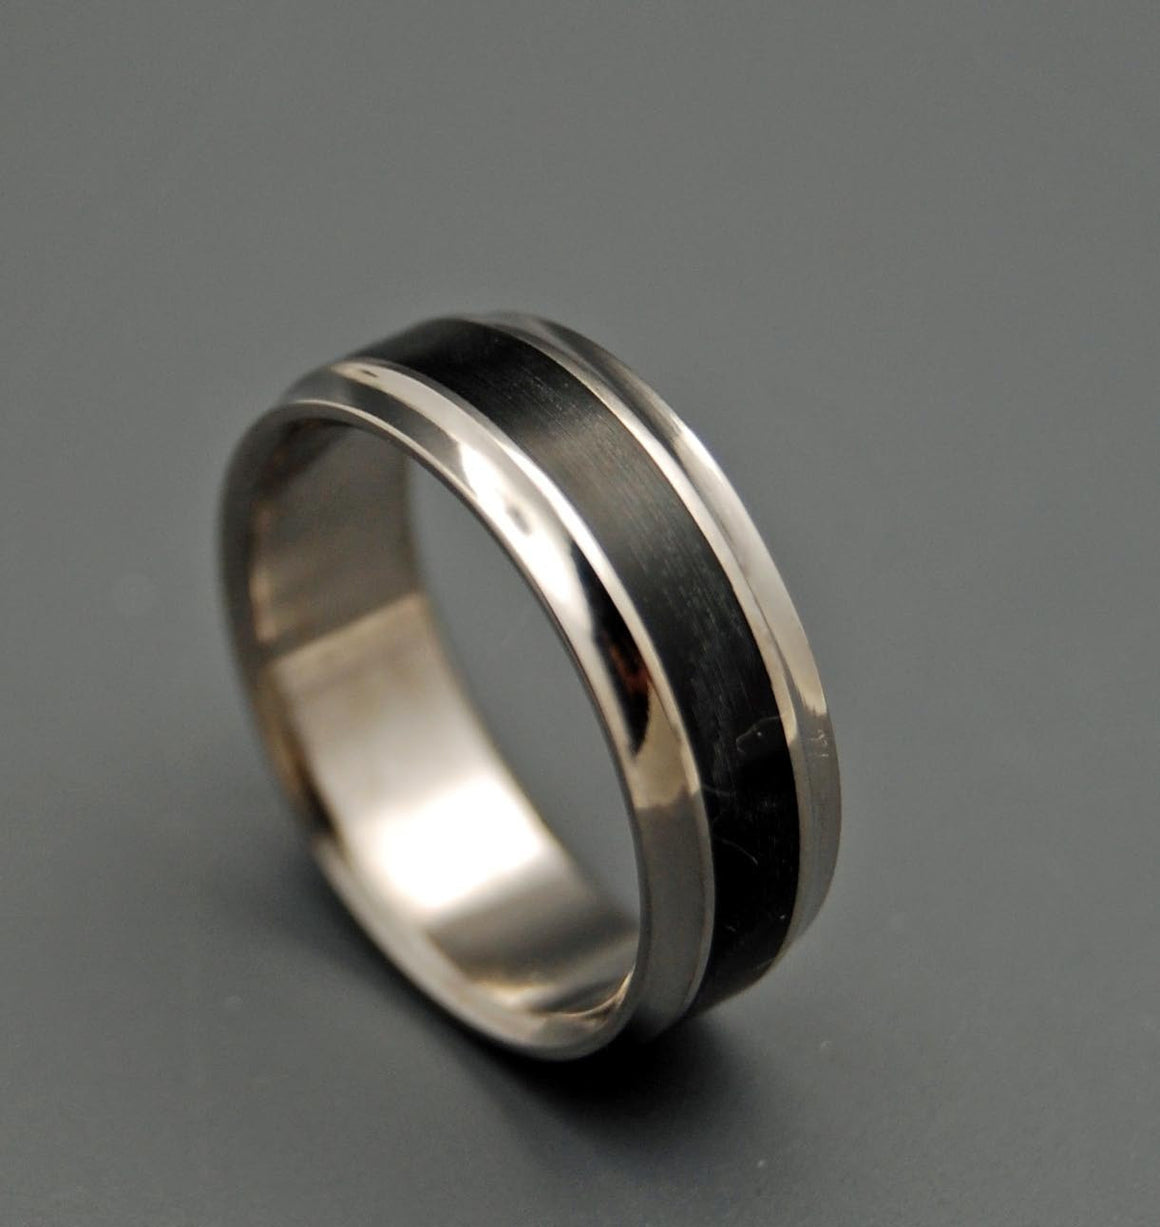 Black Beauty | Handcrafted Titanium Wedding Ring - Minter and Richter Designs